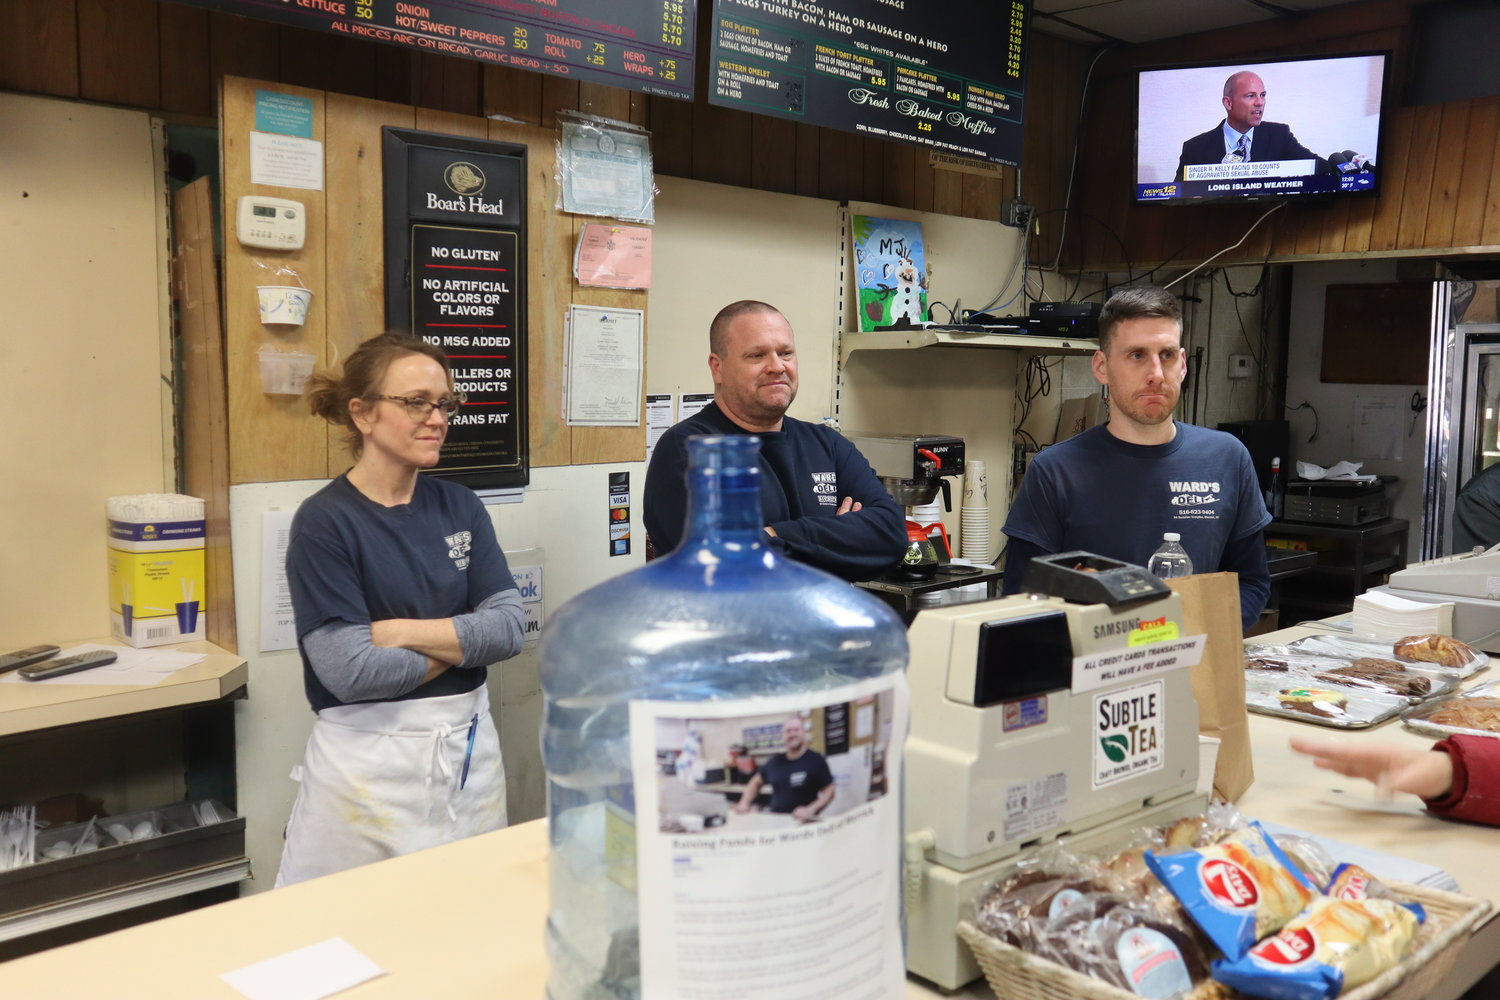 Ward's Deli closed up shop on Feb. 23. Owner Craig Jeffrey, center, with his sister, Tara Polley, and manager David Brown, behind the counter, reflected on decades of Ward's memories.